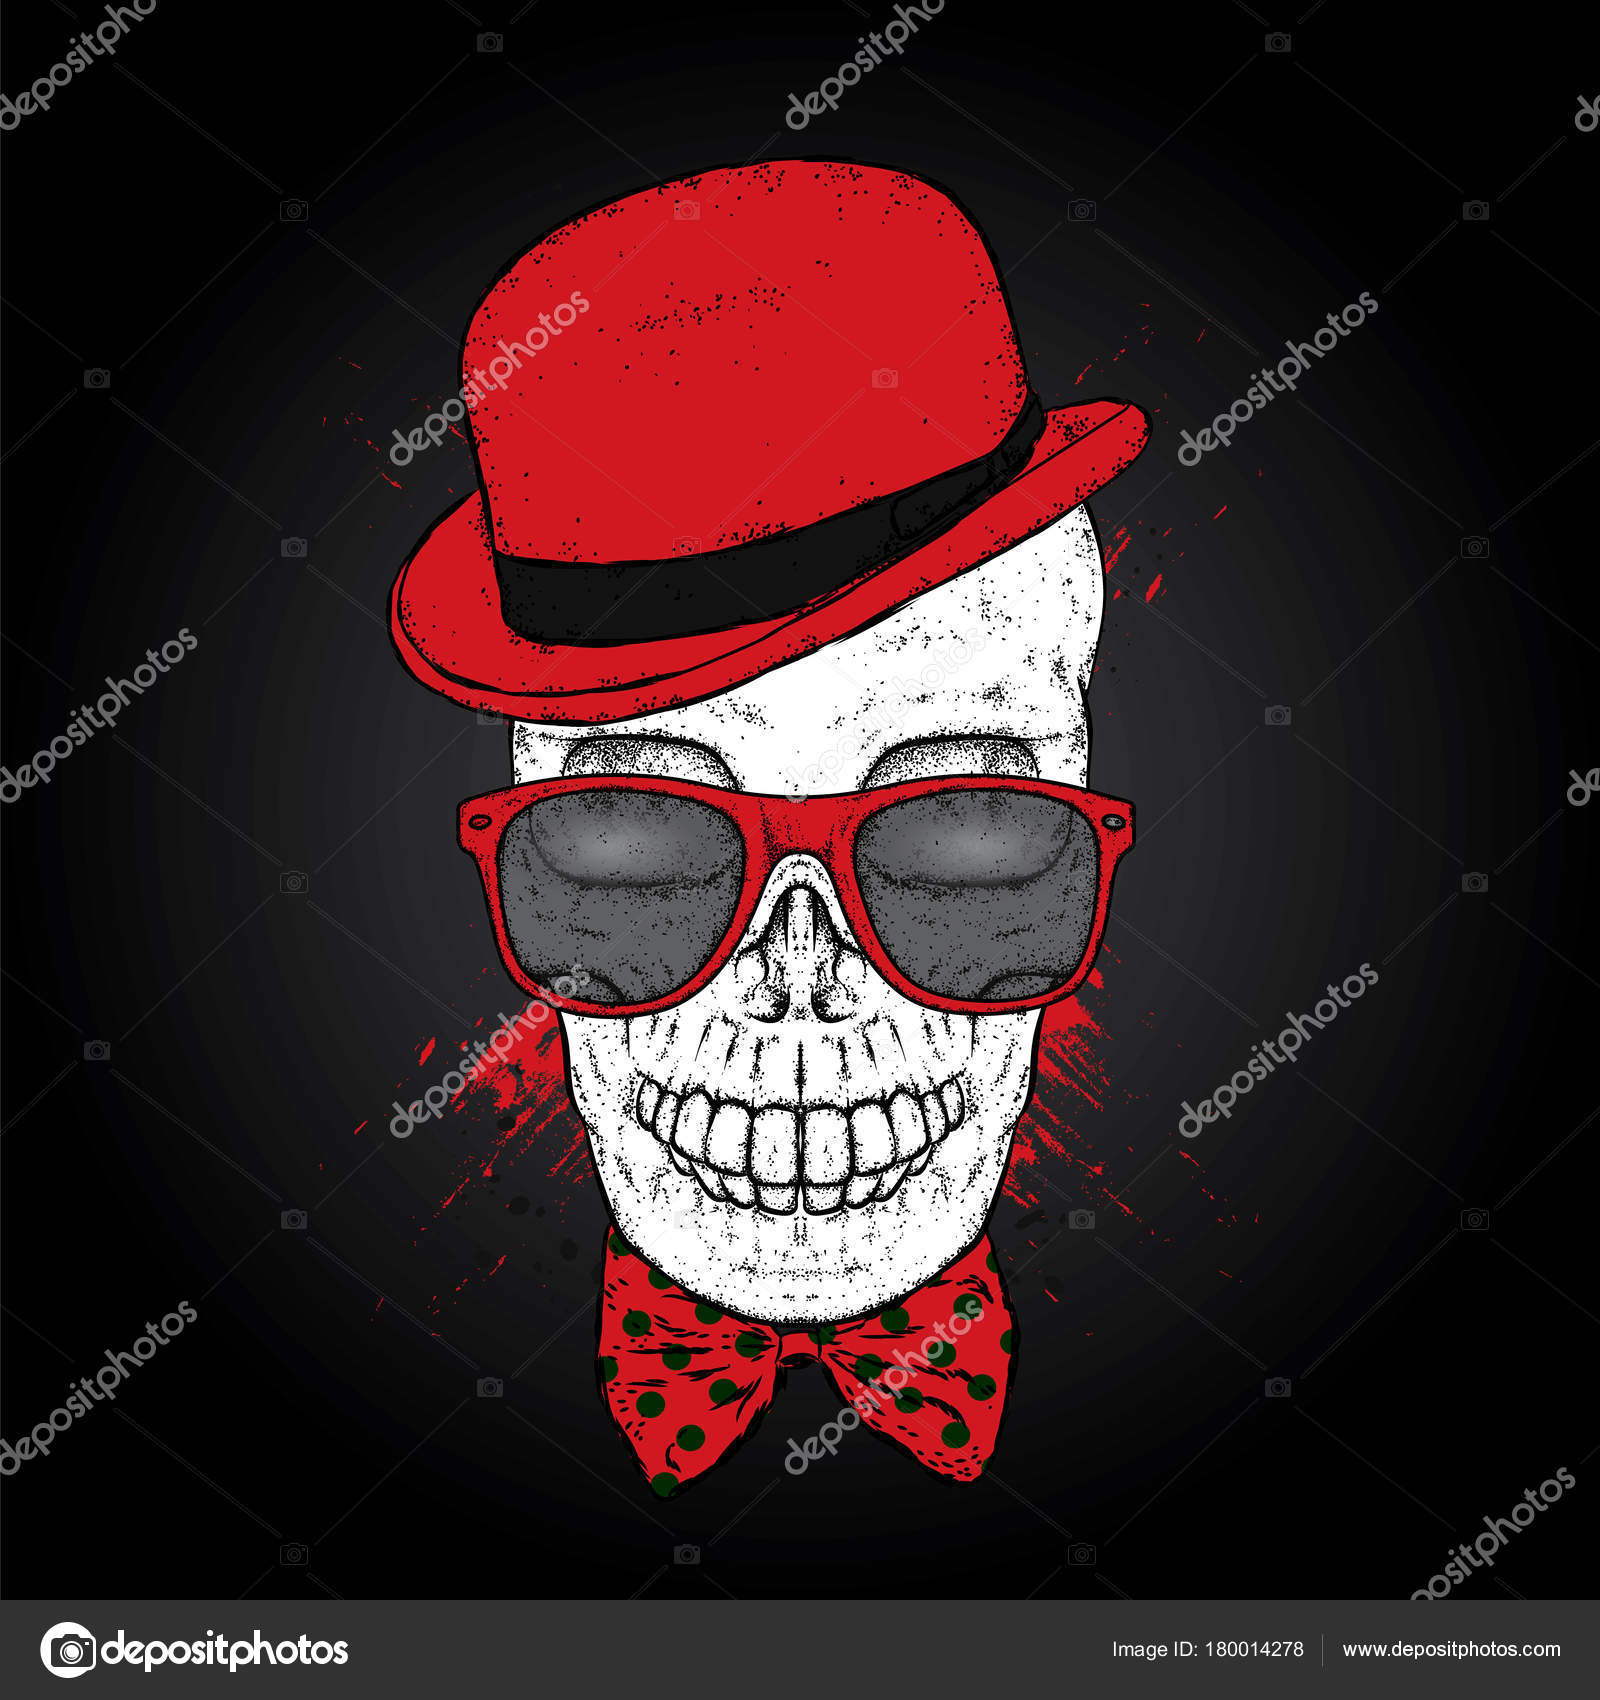 03eabe524 Skull in a hat, glasses and a tie. St.Patrick's day. Vector illustration  for a postcard or a poster, print for clothes.